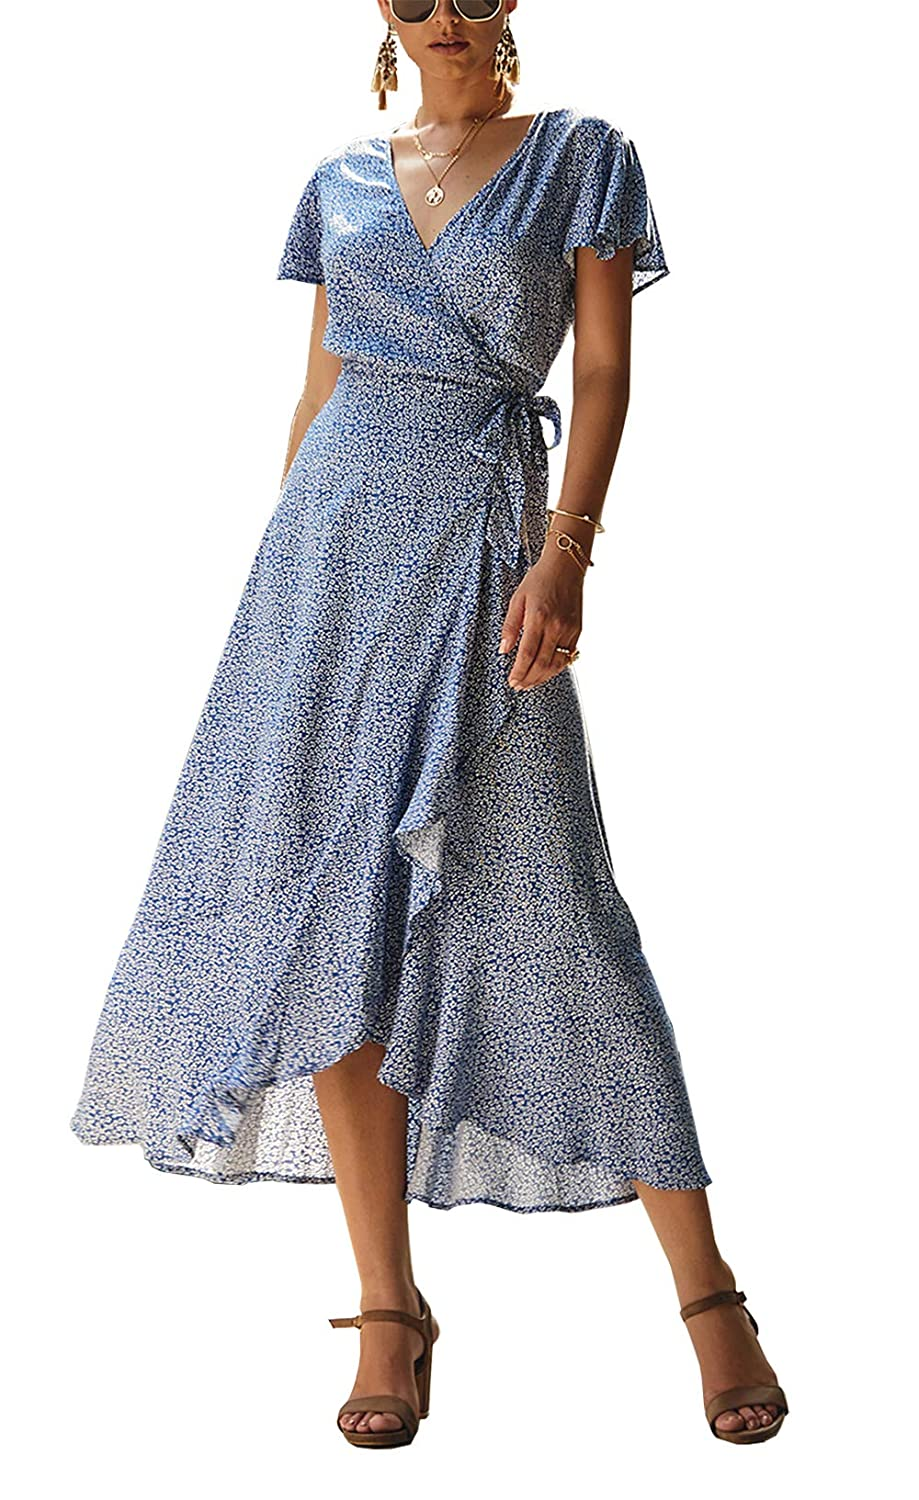 PRETTYGARDEN Womens Summer V Neck Wrap Vintage Floral Print Short Sleeve Split Belted Flowy Boho Beach Long Dress